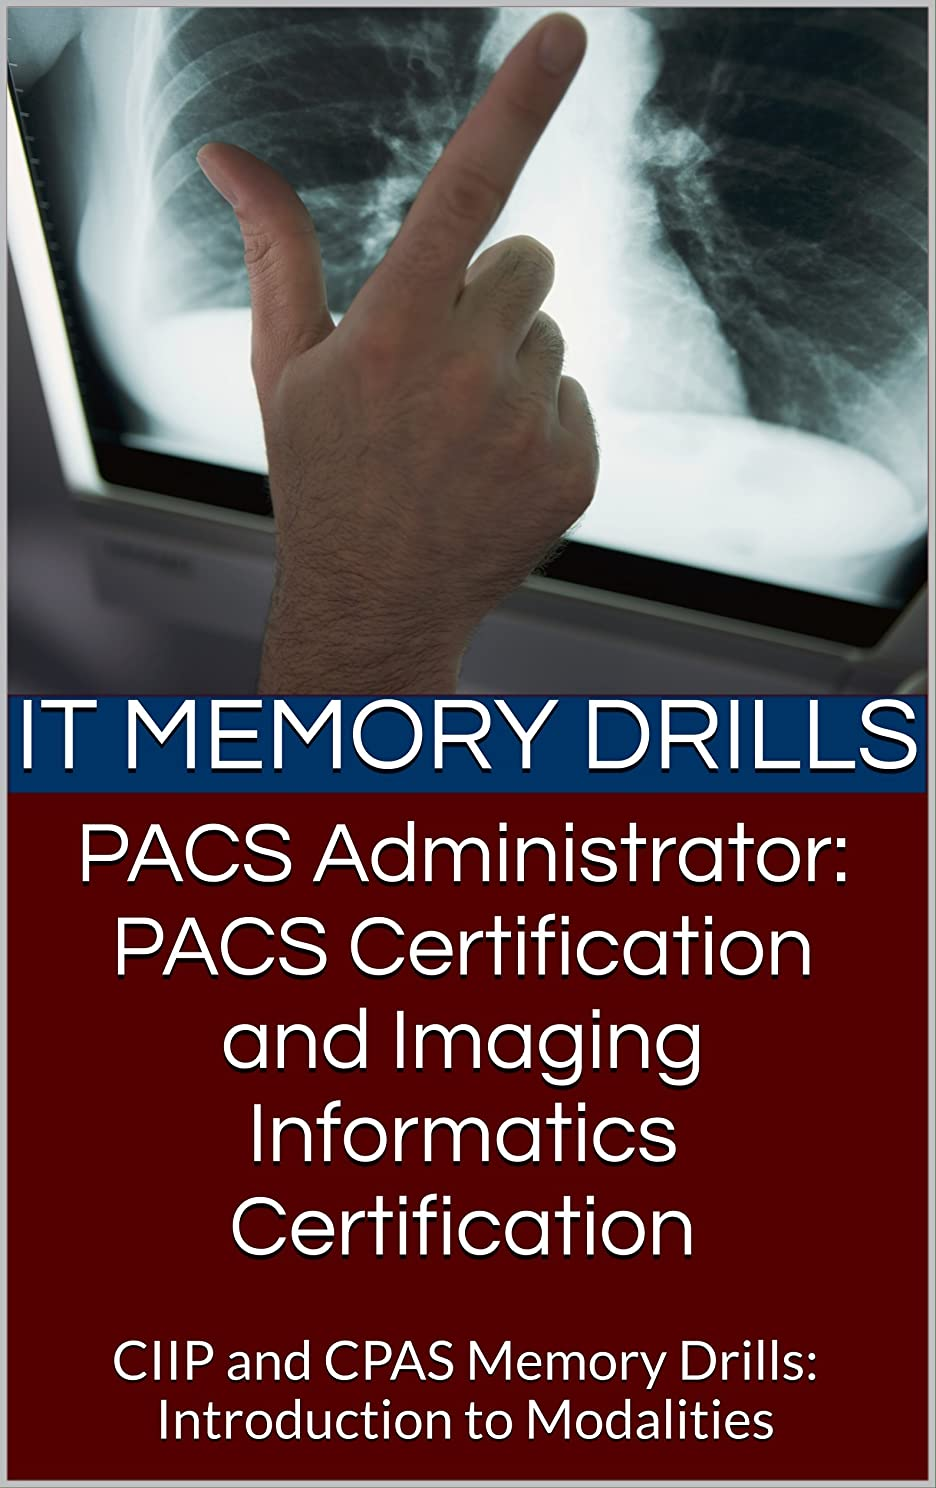 発生する指定するオフセットPACS Administrator: PACS Certification and Imaging Informatics Certification: CIIP and CPAS Memory Drills:  Introduction to Modalities (PACS Certification Memory Drills Book 1) (English Edition)